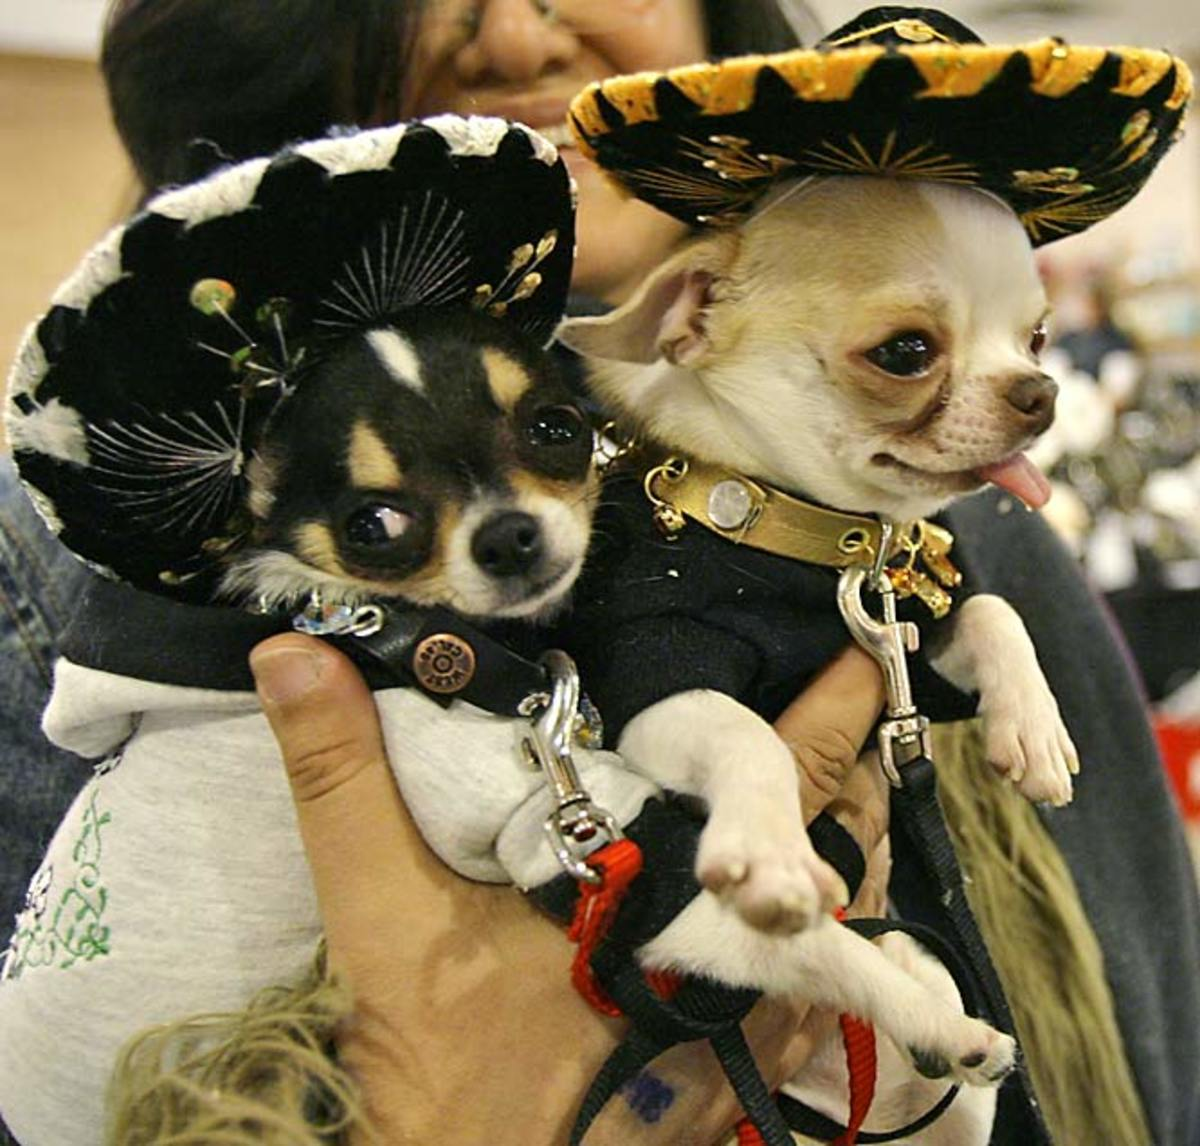 Tequila (left) and Tabasco, Chihuahuas